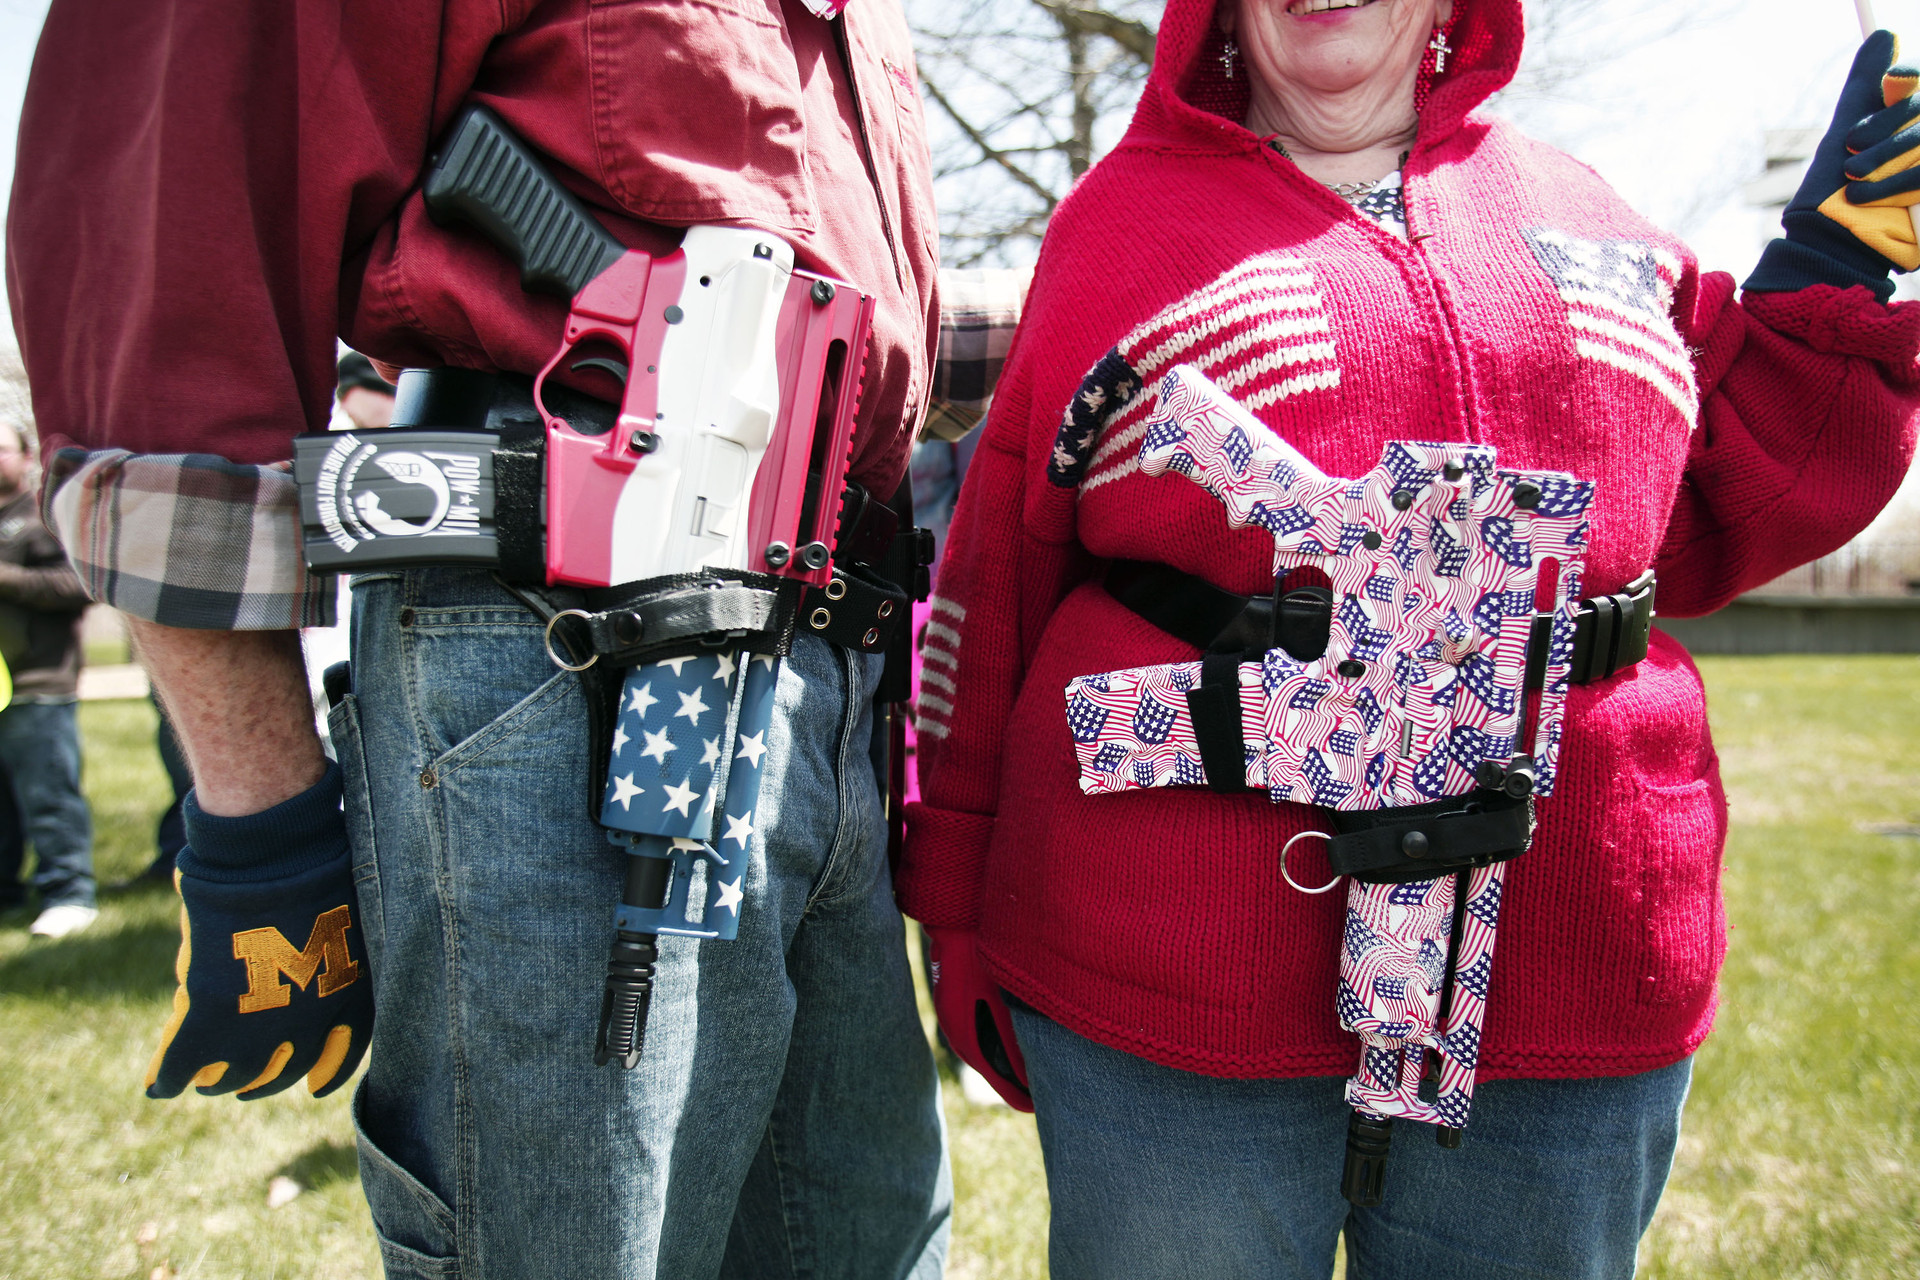 A couple carry decorated Olympic Arms .223 pistols at a rally for supporters of Michigan's open carry law.